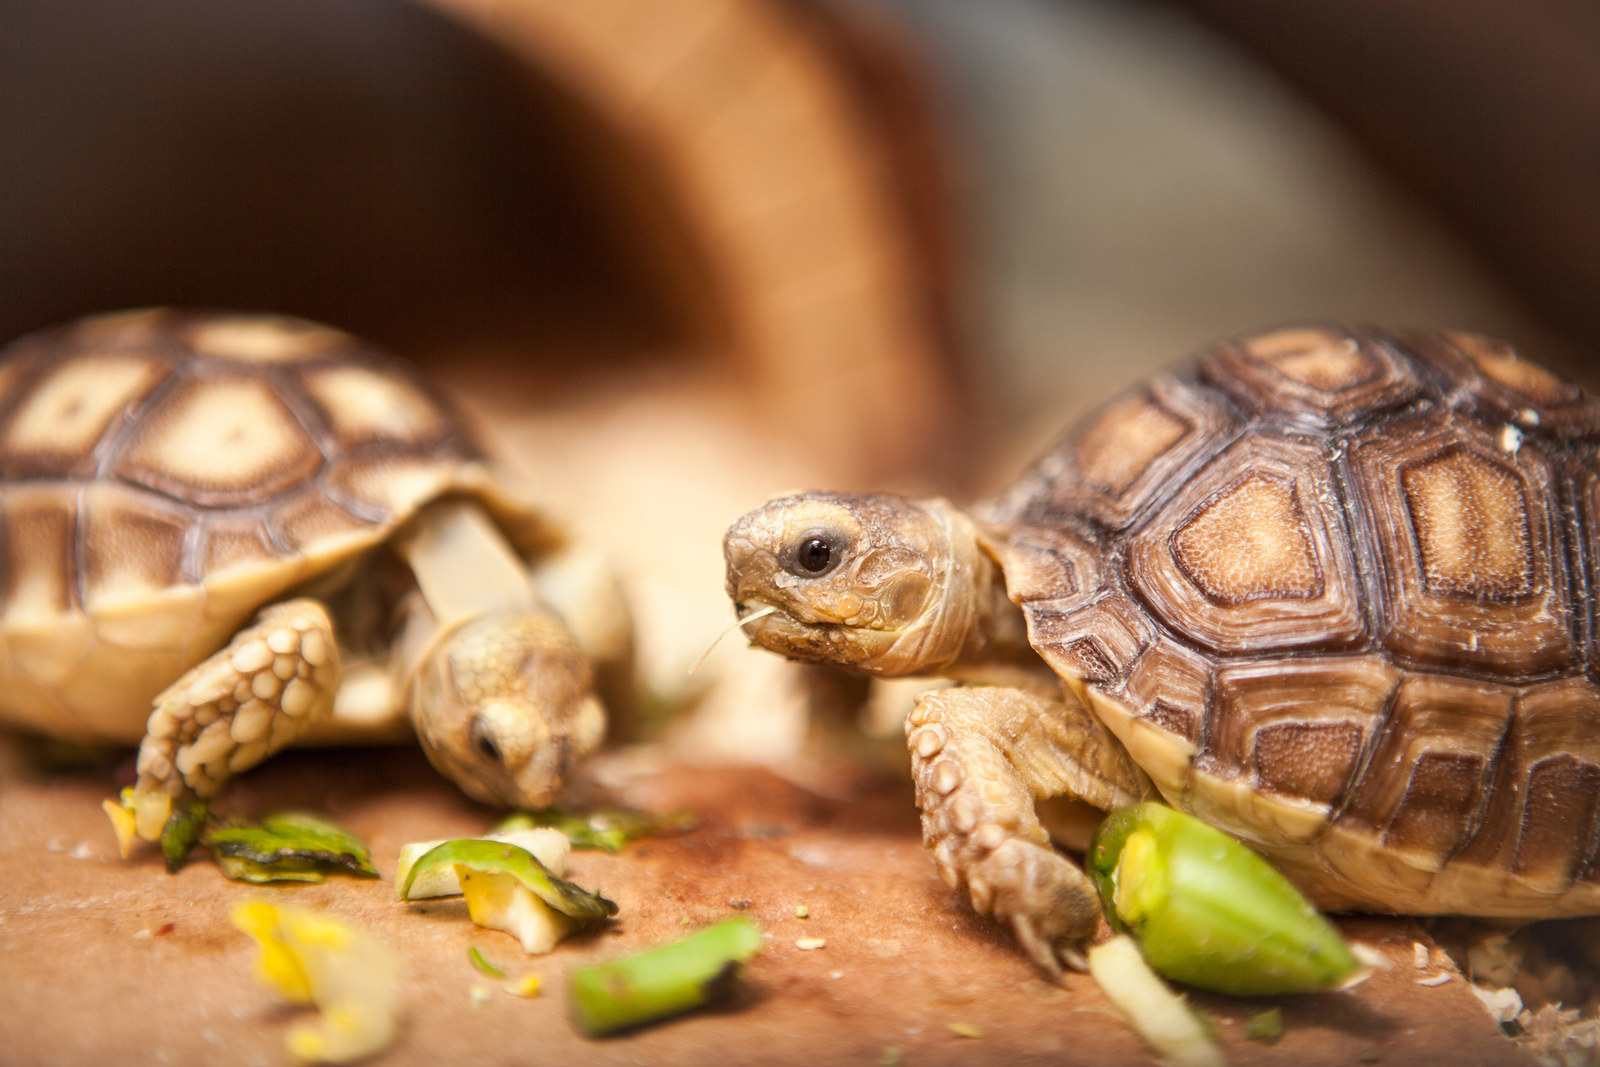 How Sulcata Tortoises Became America's Most Adorable Mistake